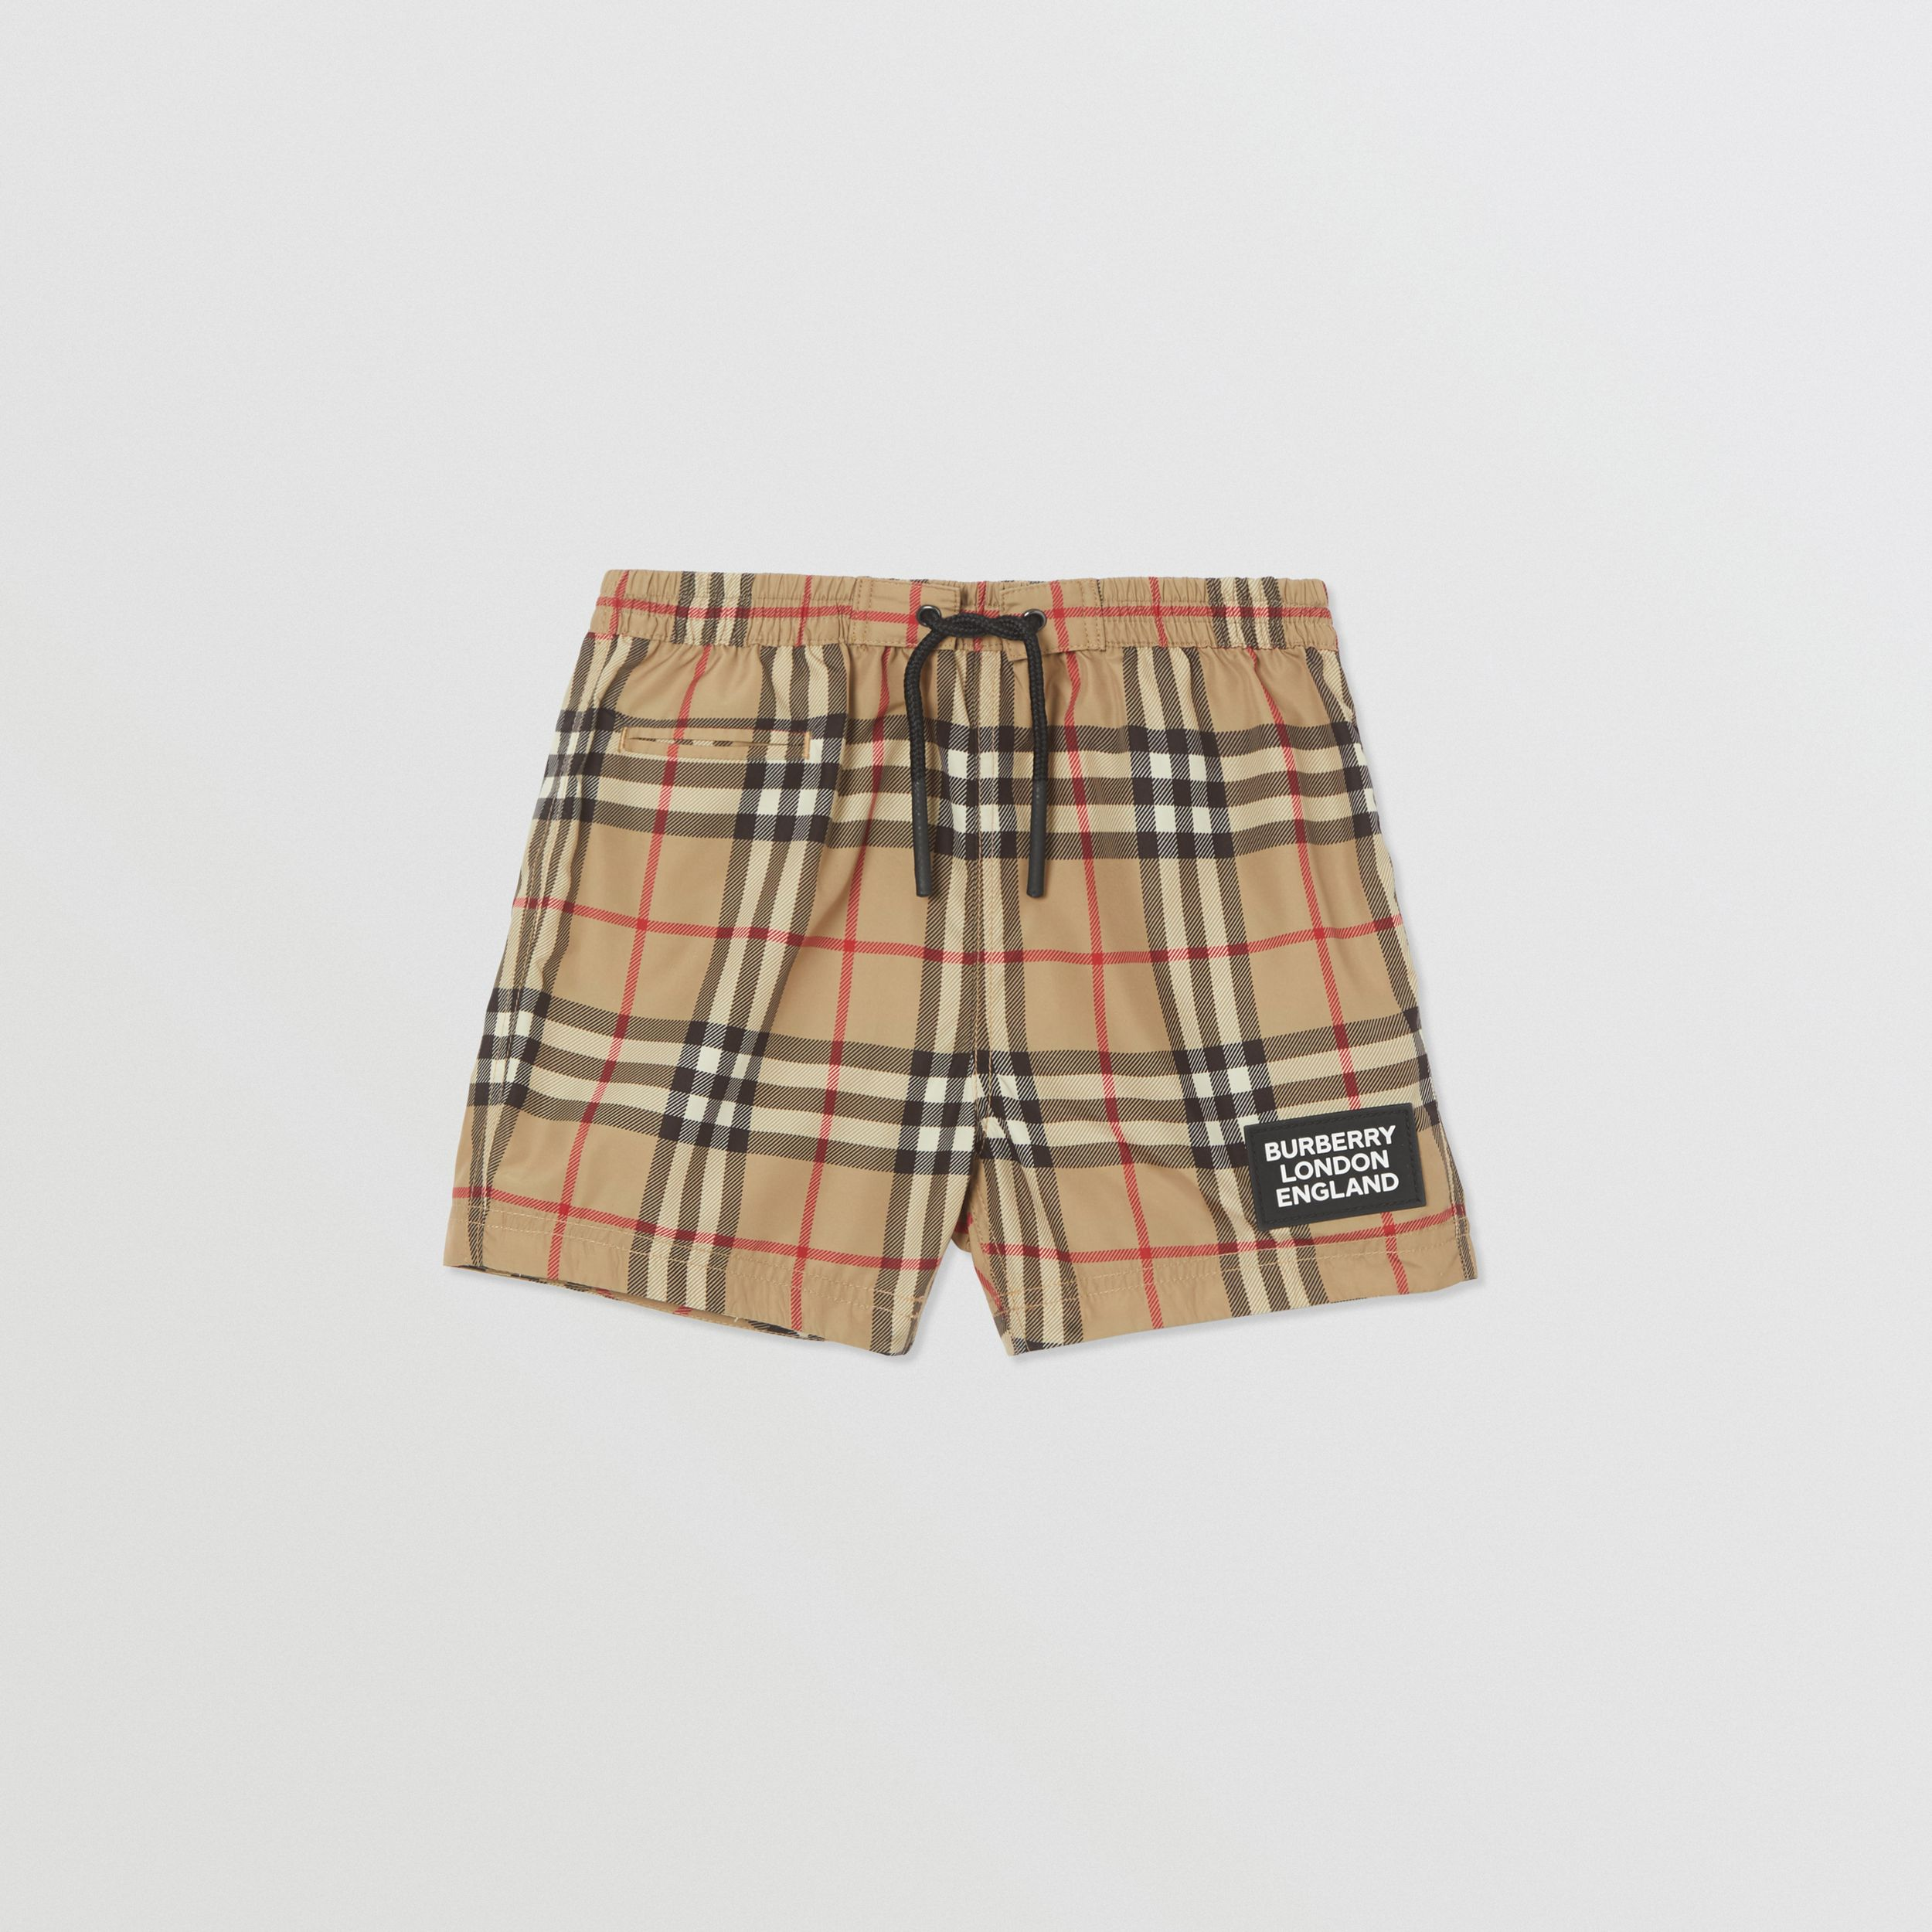 Logo Appliqué Vintage Check Swim Shorts in Archive Beige - Children | Burberry - 1